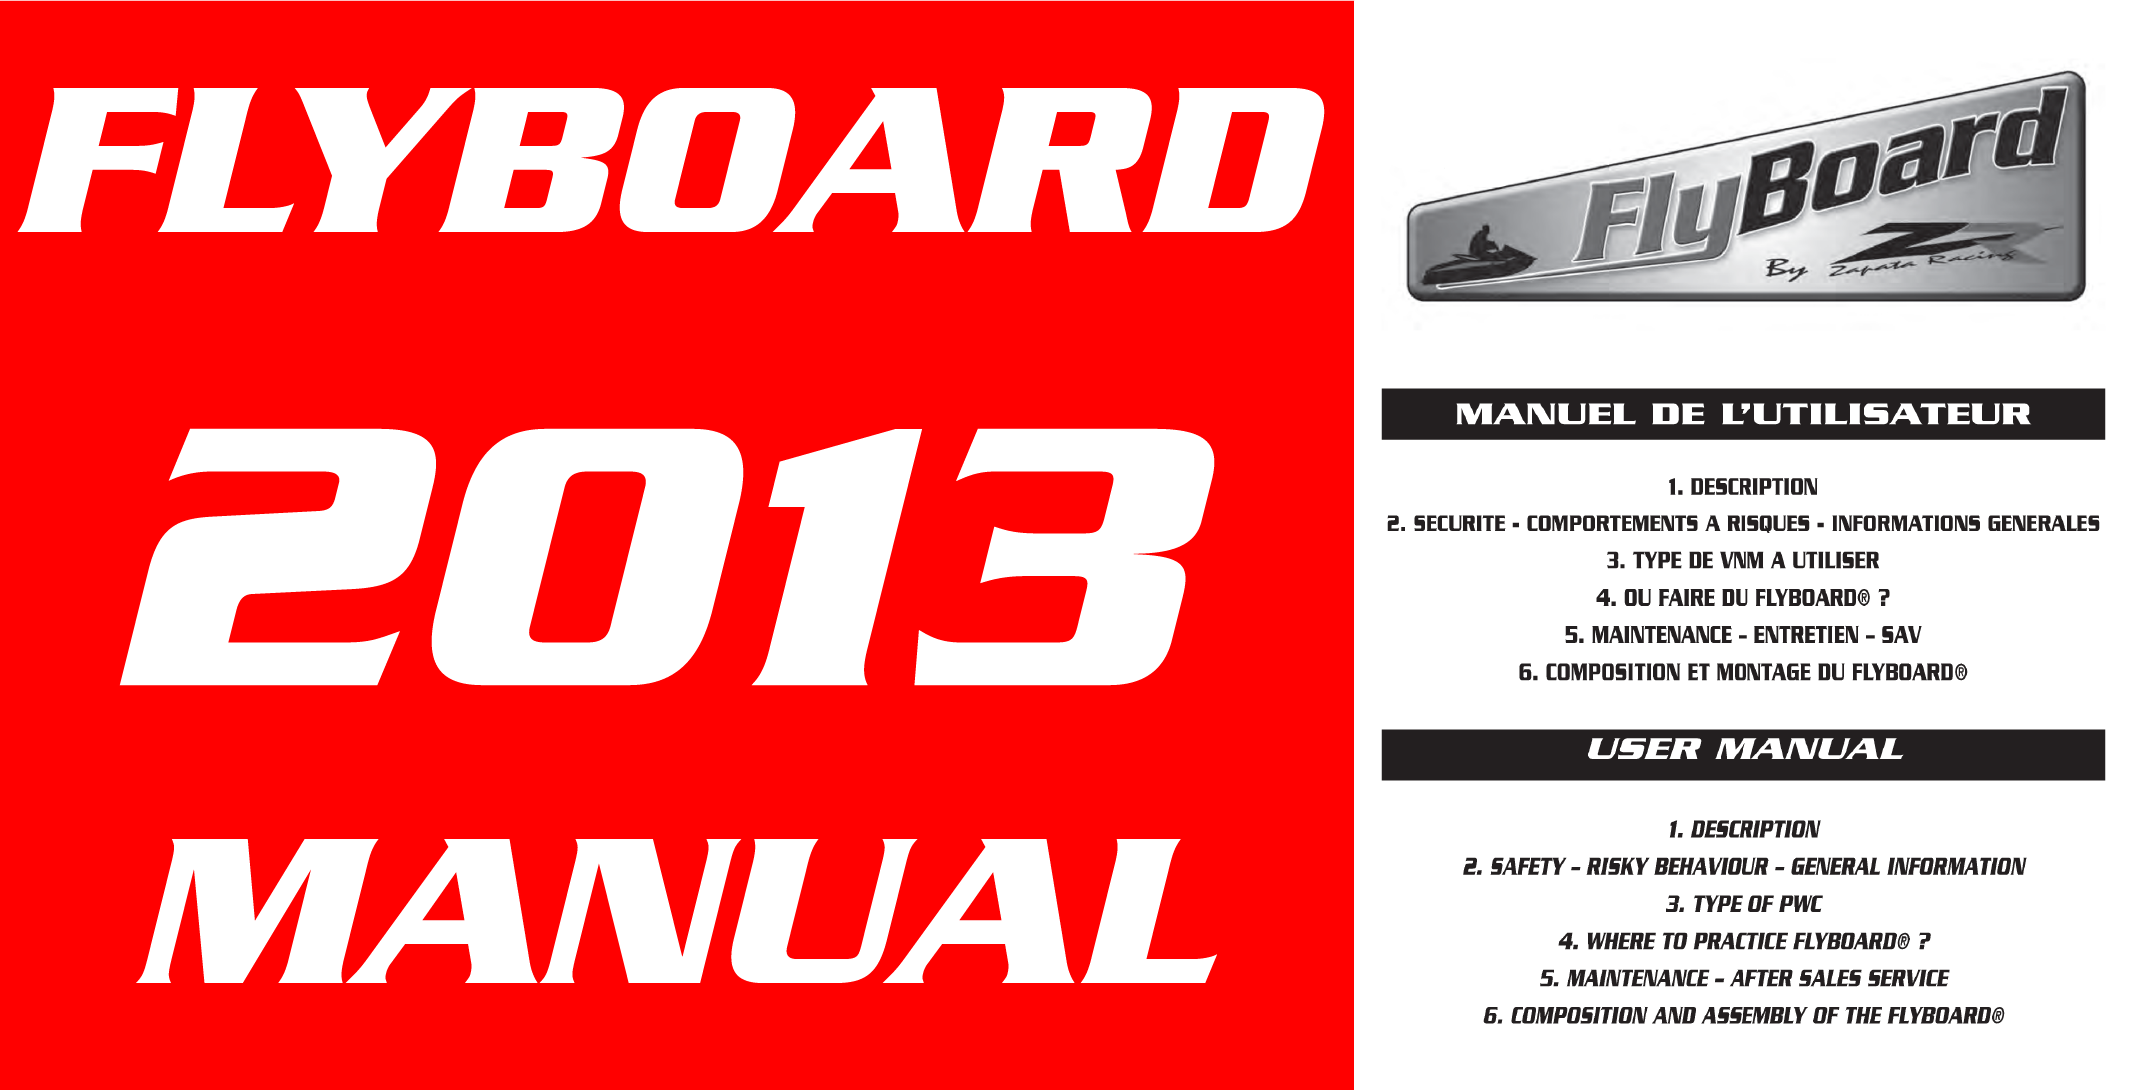 Flyboard V2 2013 Manual Download